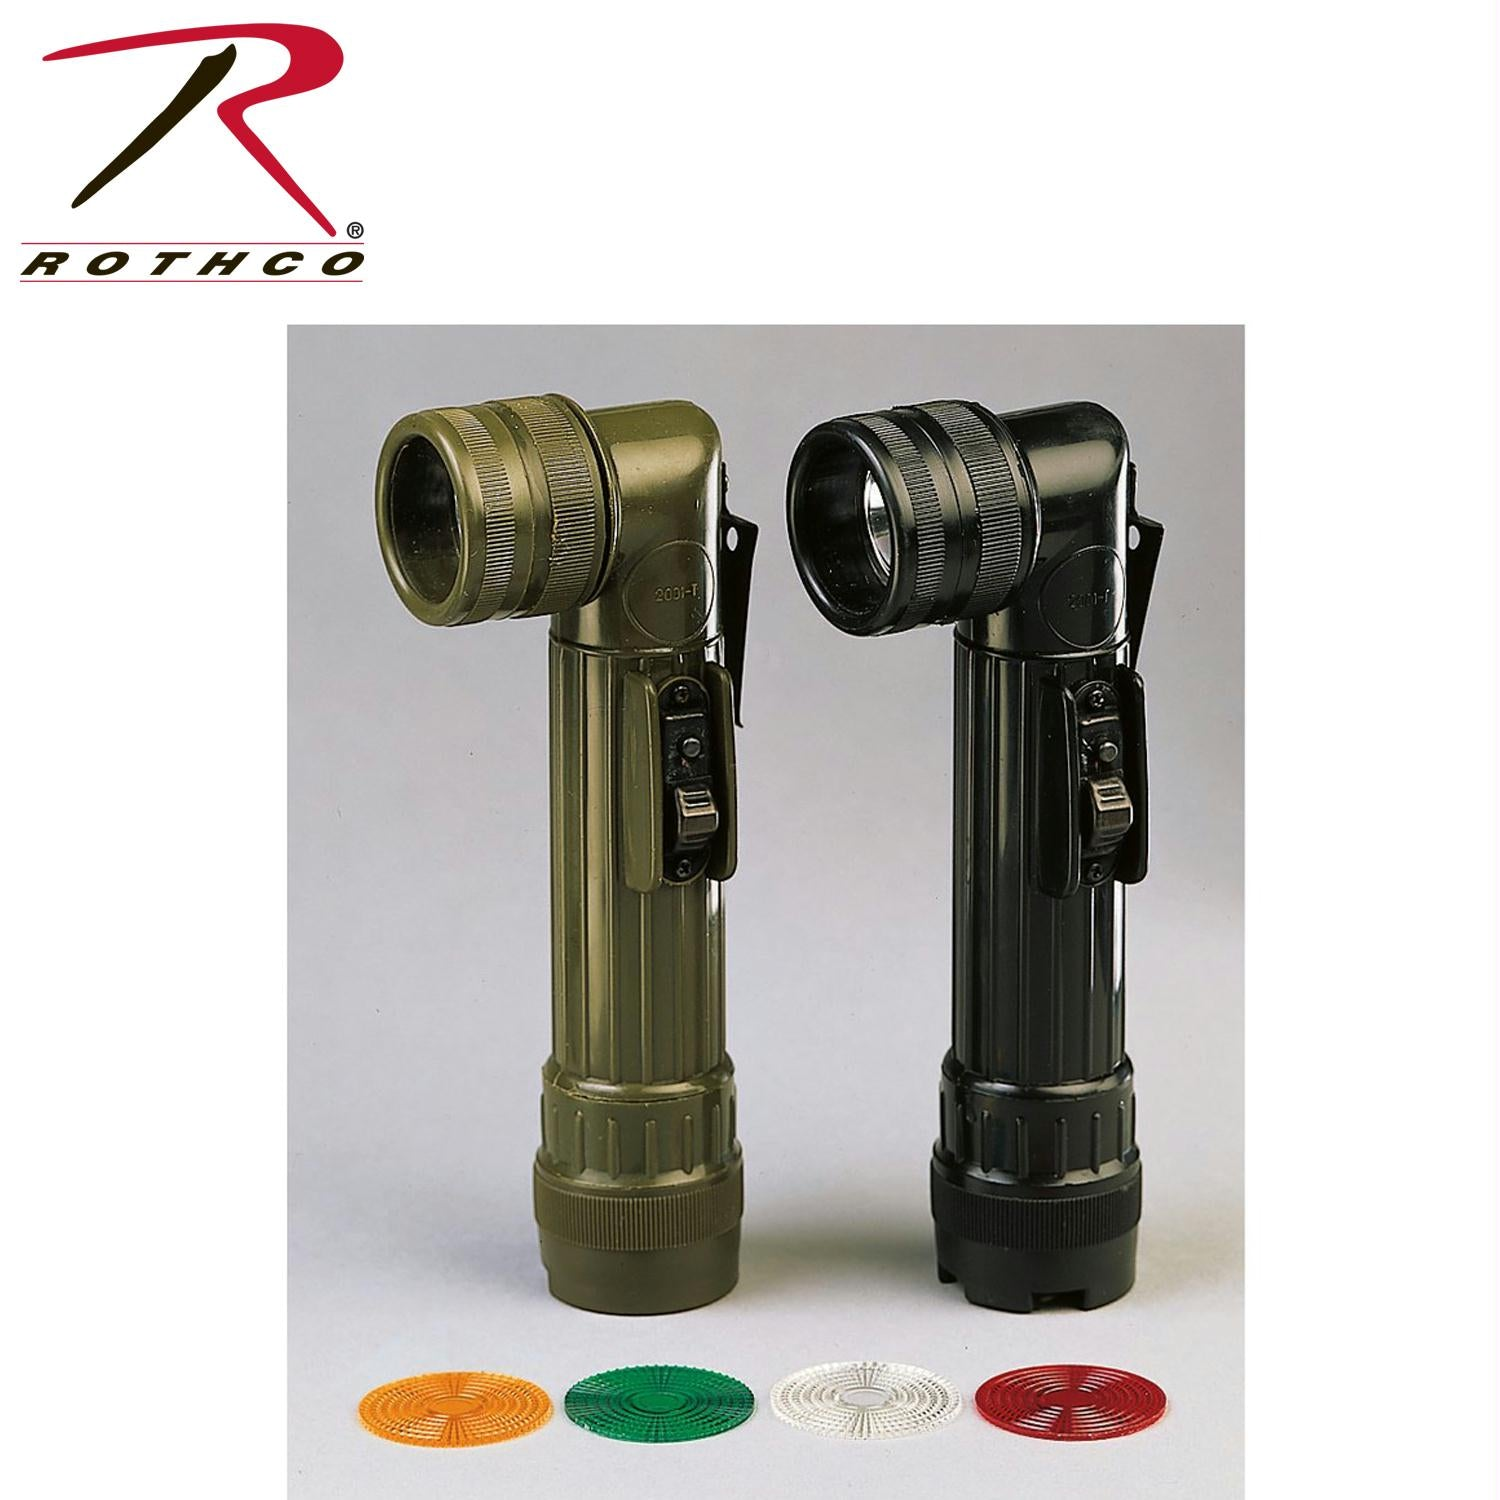 Rothco Army Style C-Cell Flashlights - Olive Drab